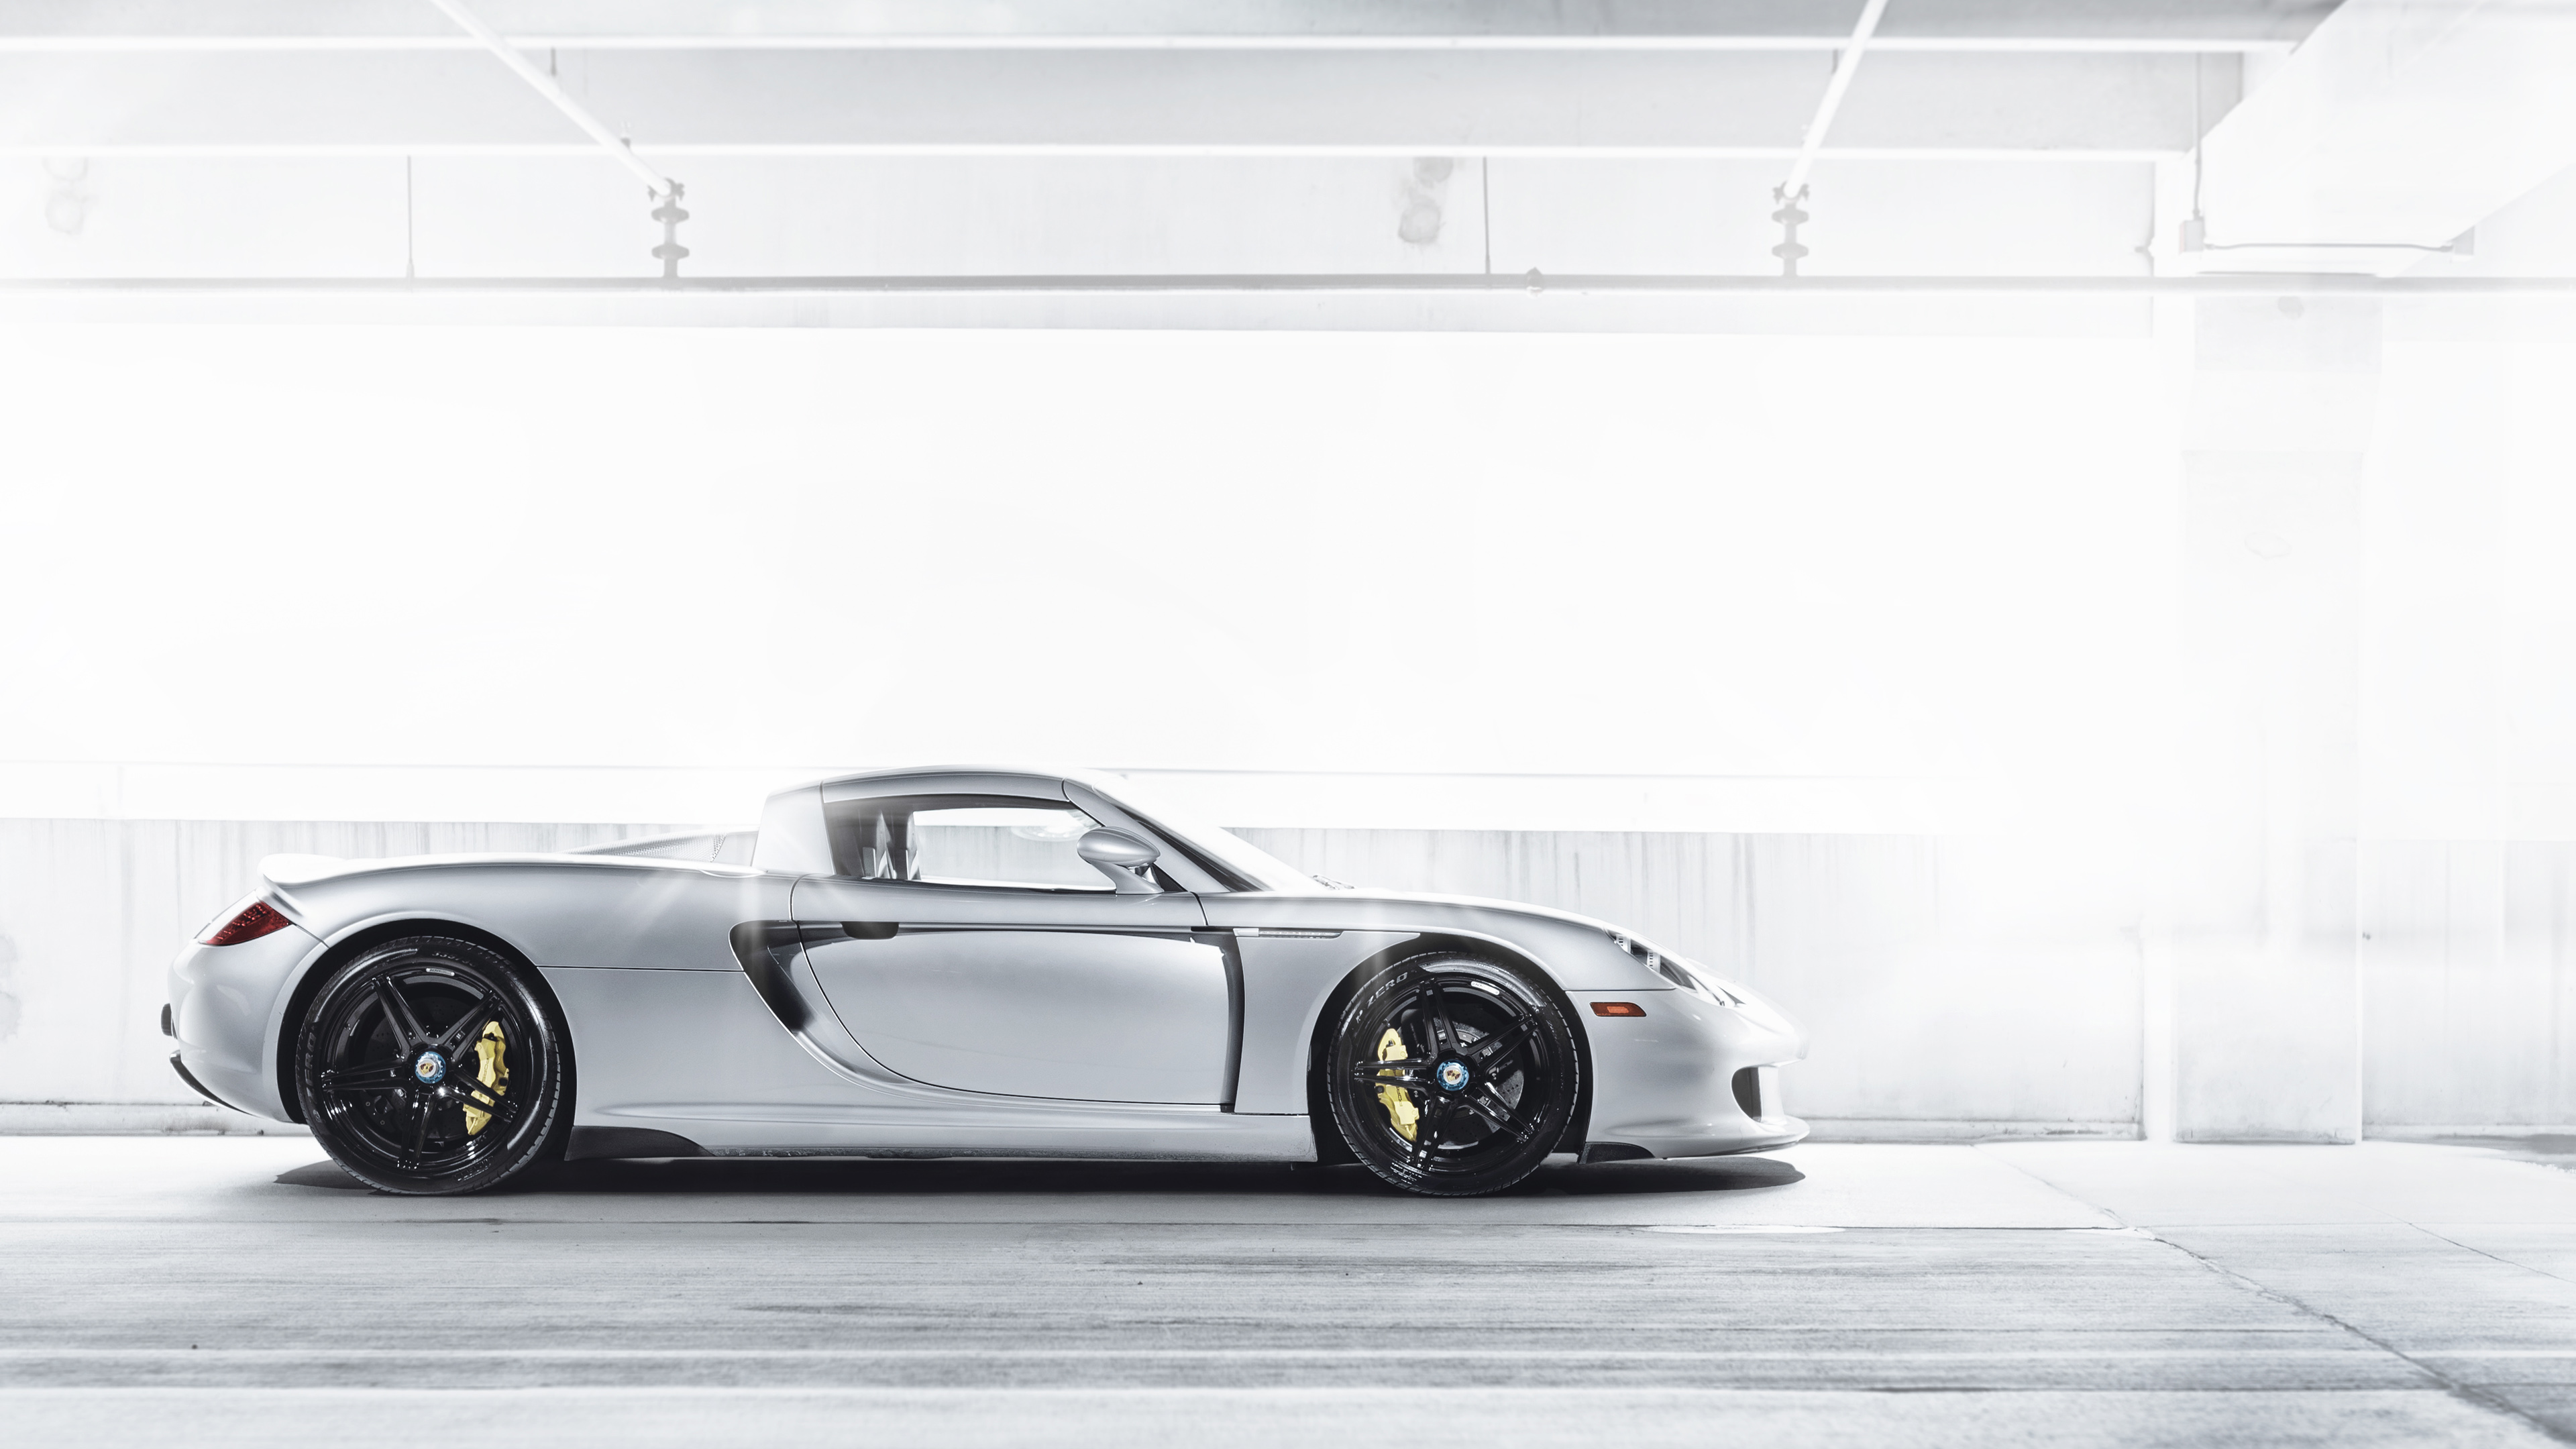 ADV1 Porsche Carrera GT Wallpaper